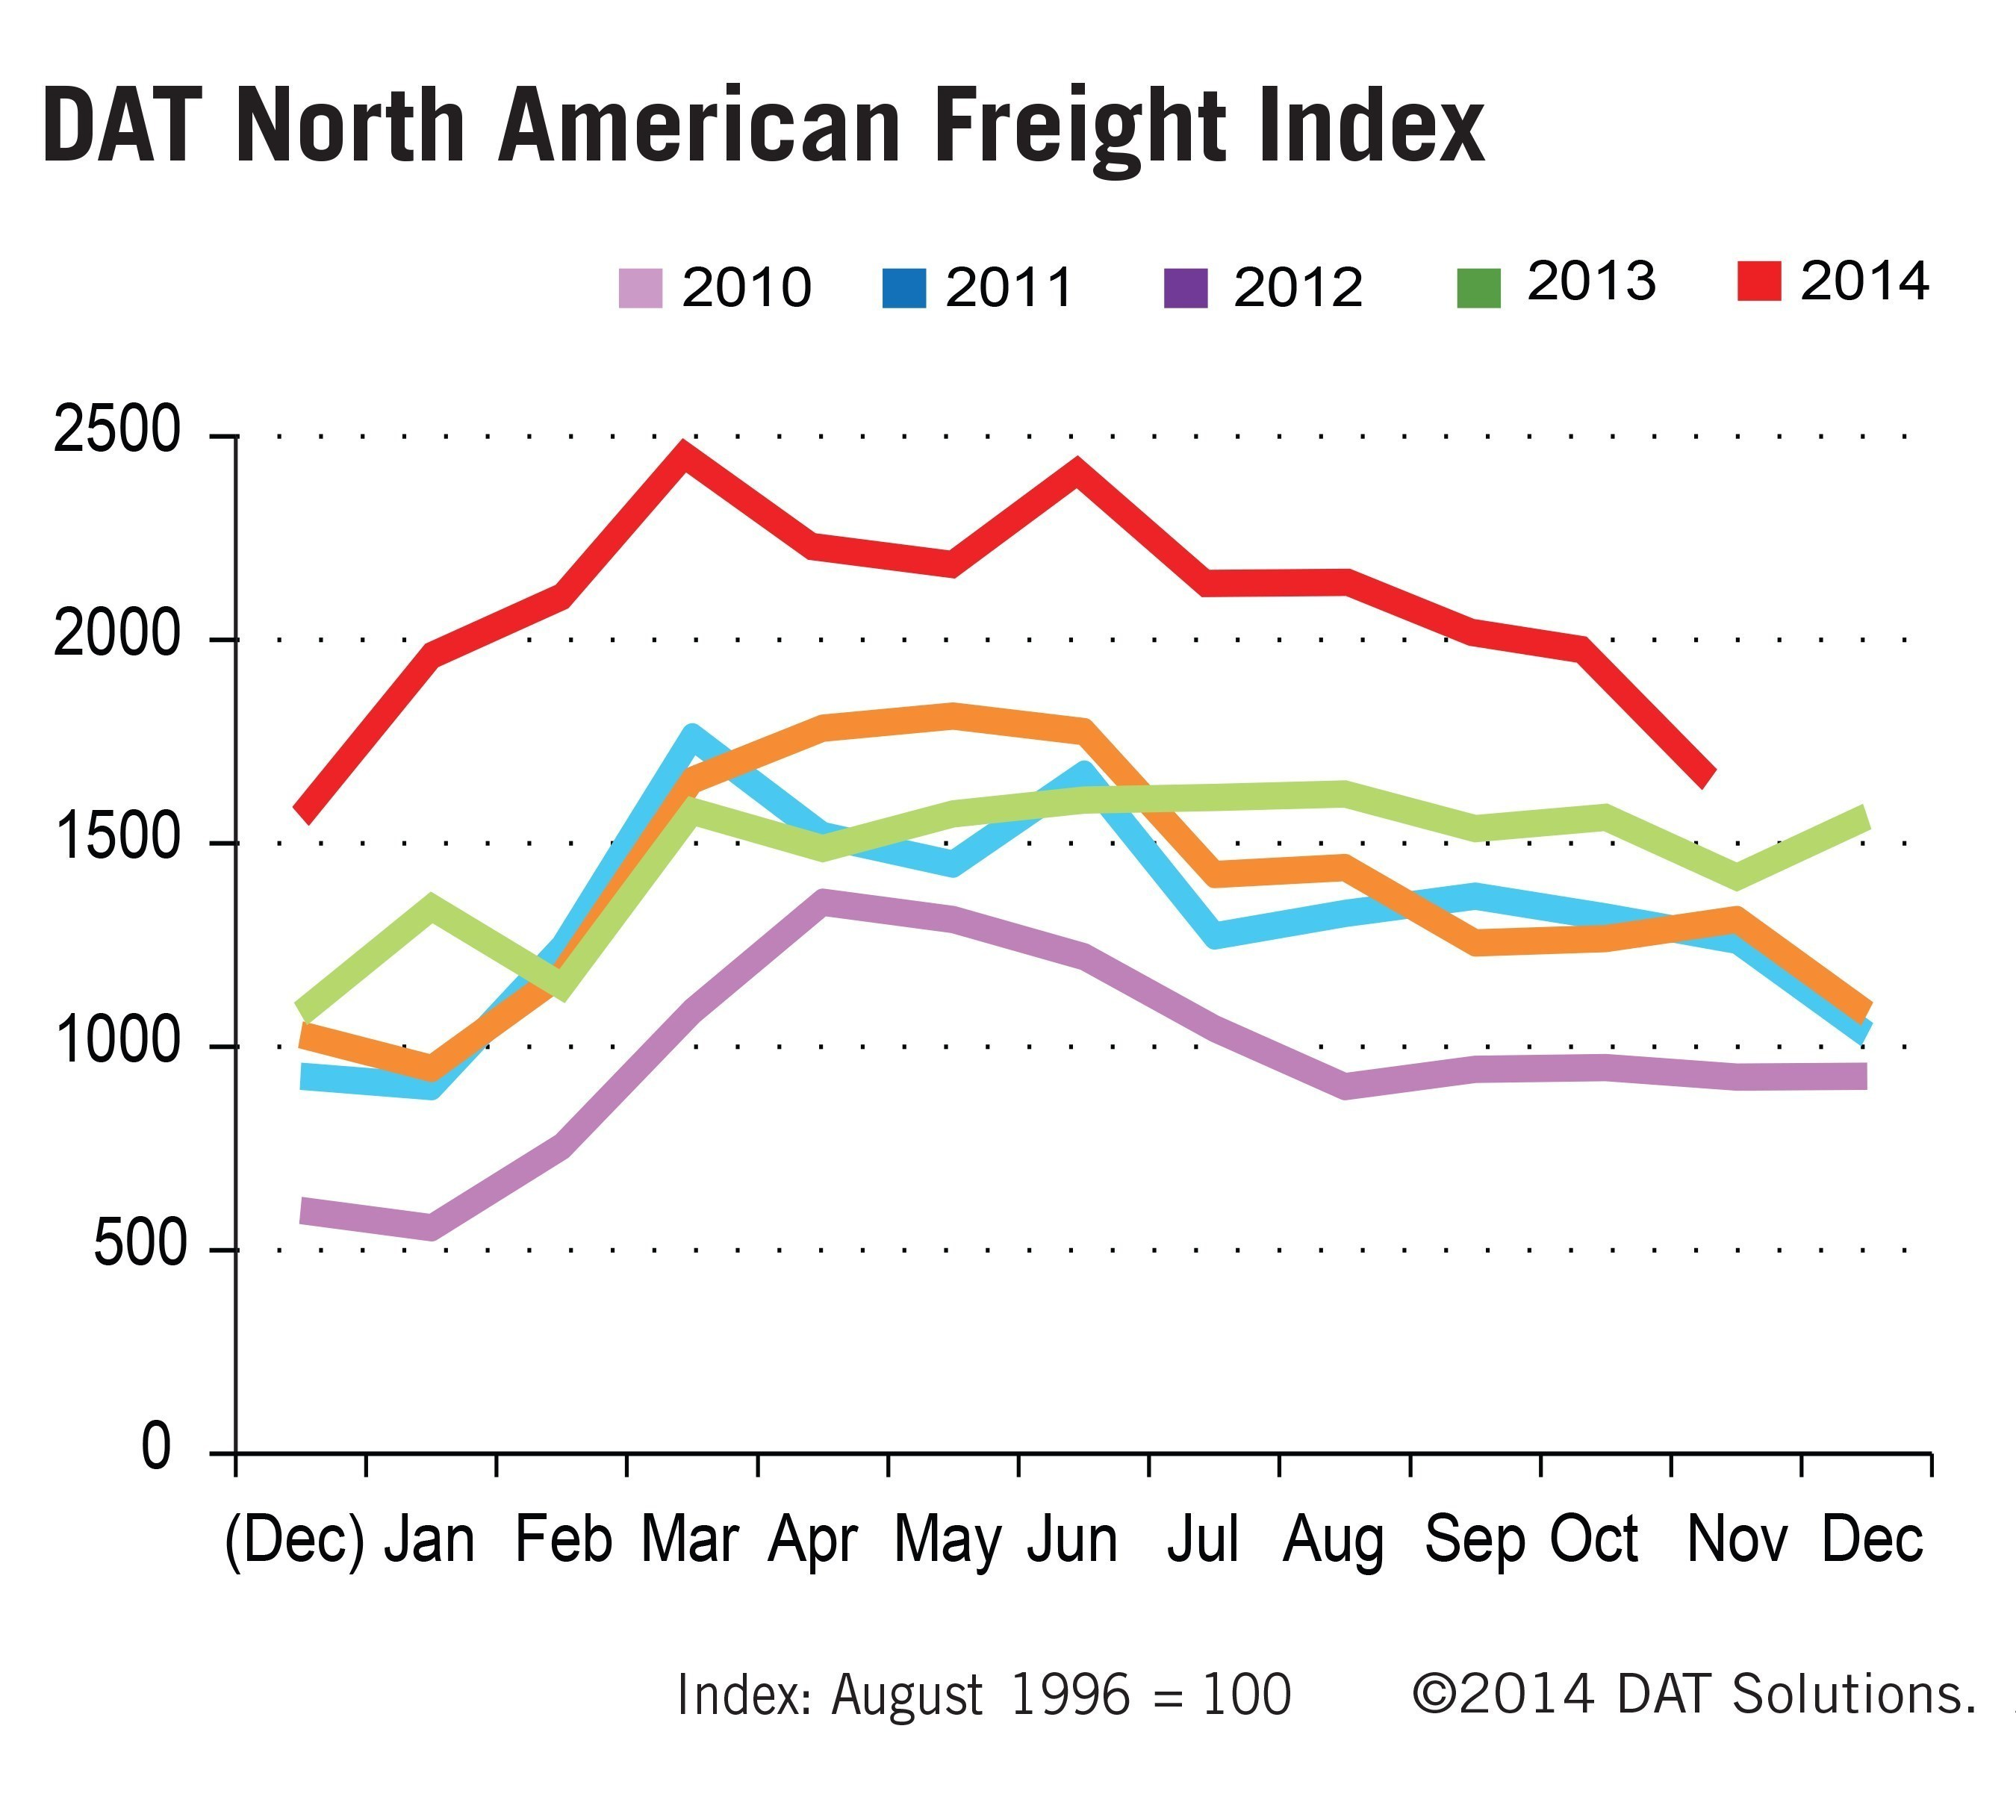 Truckload Freight Plentiful, Rates Up: November DAT Freight